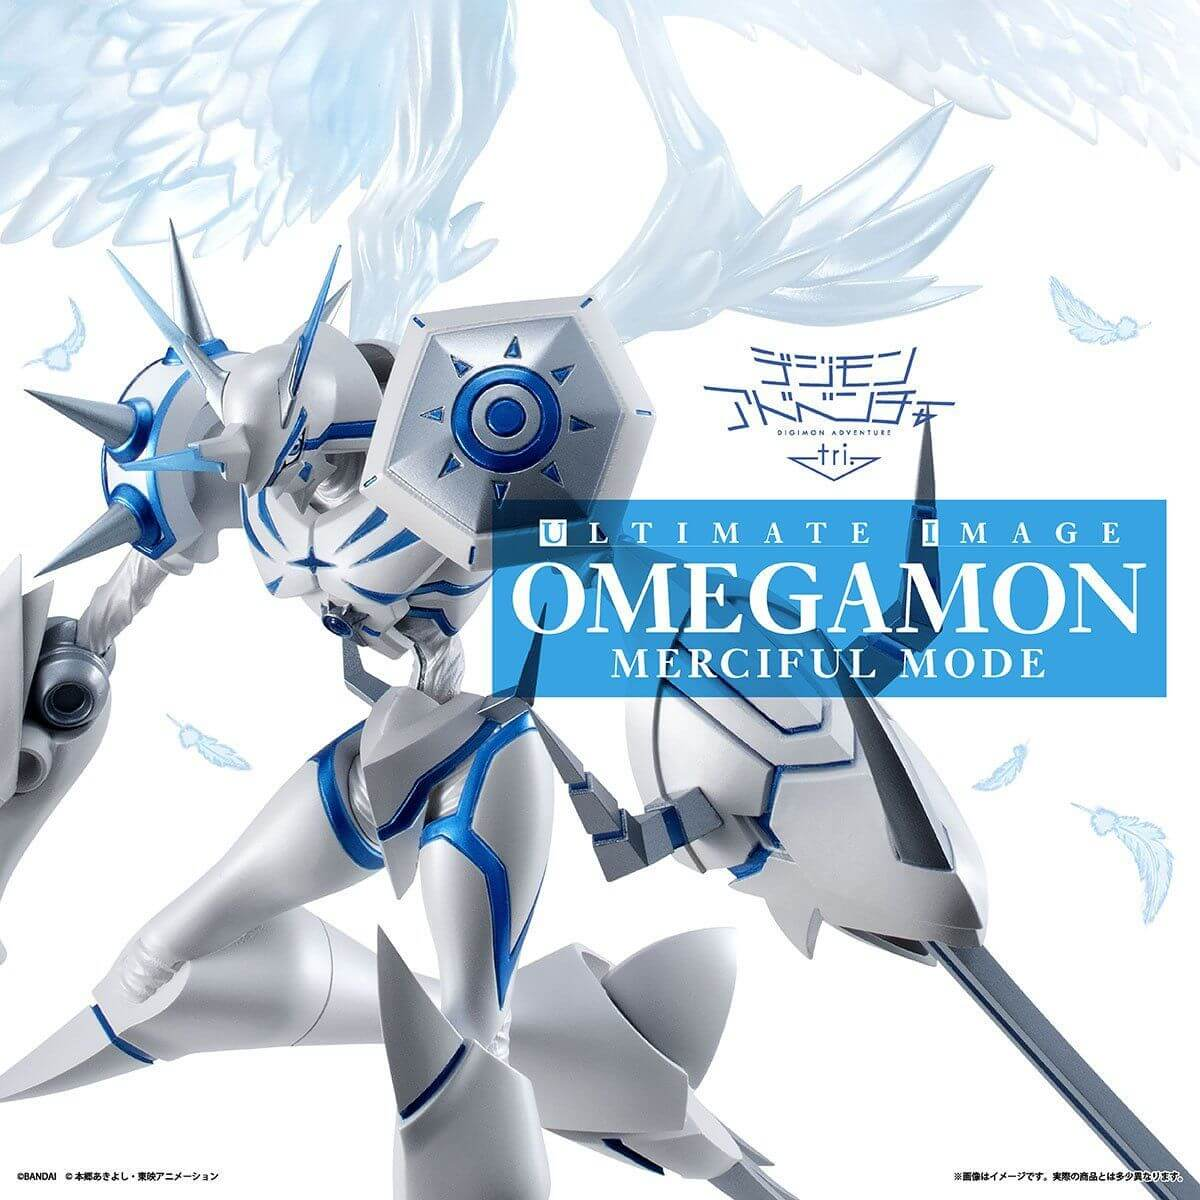 ¡Disponible la reserva de Omegamon Merciful Mode!